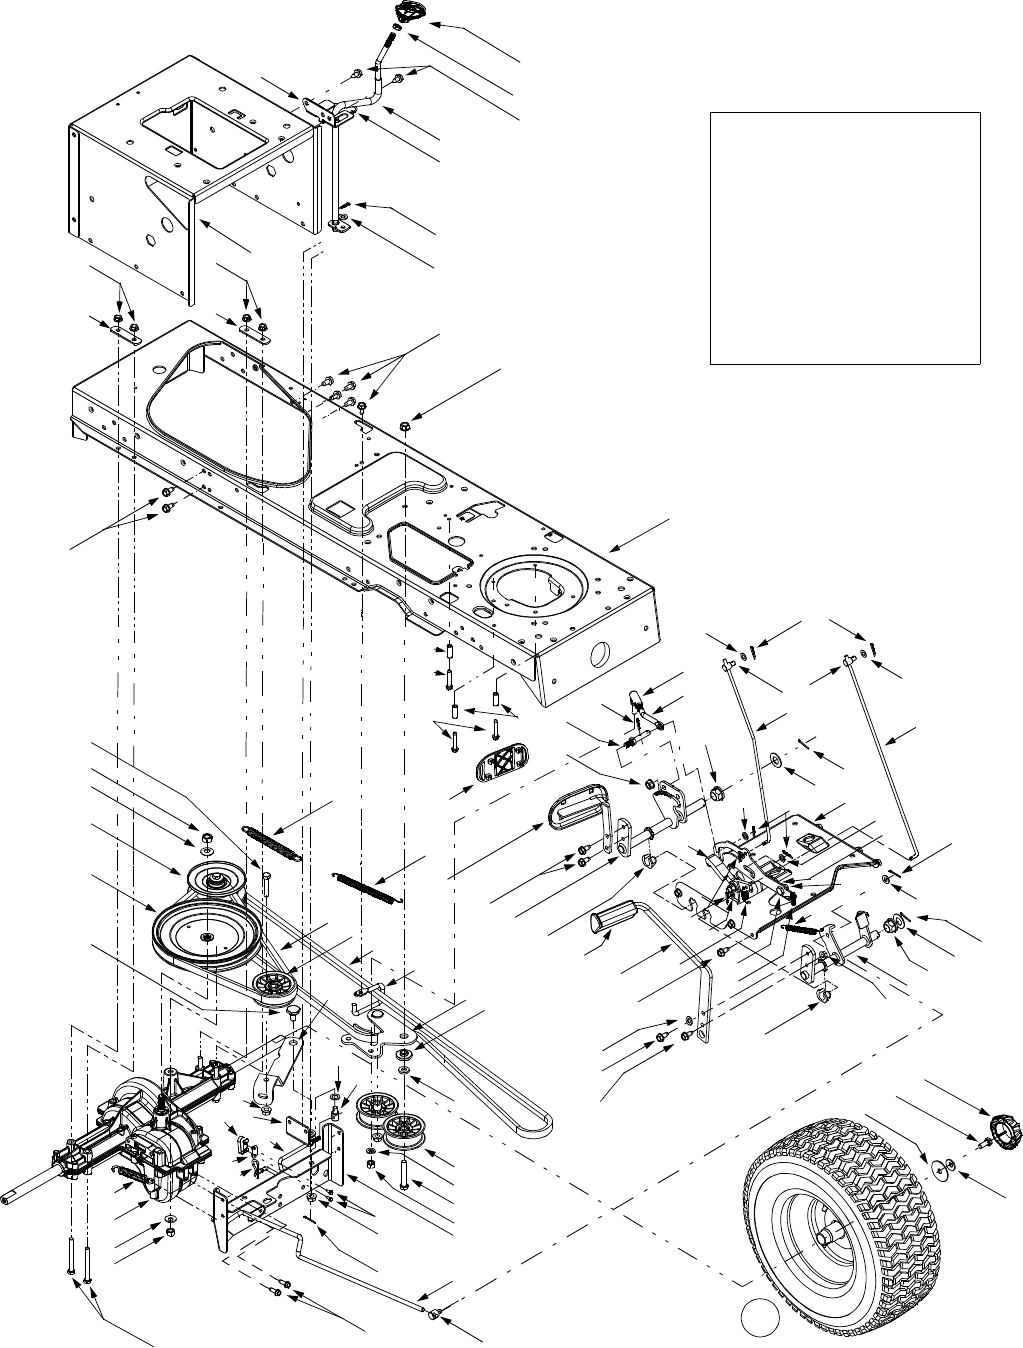 page 34 of troy bilt lawn mower ltx 2146 user guide manualsonline com